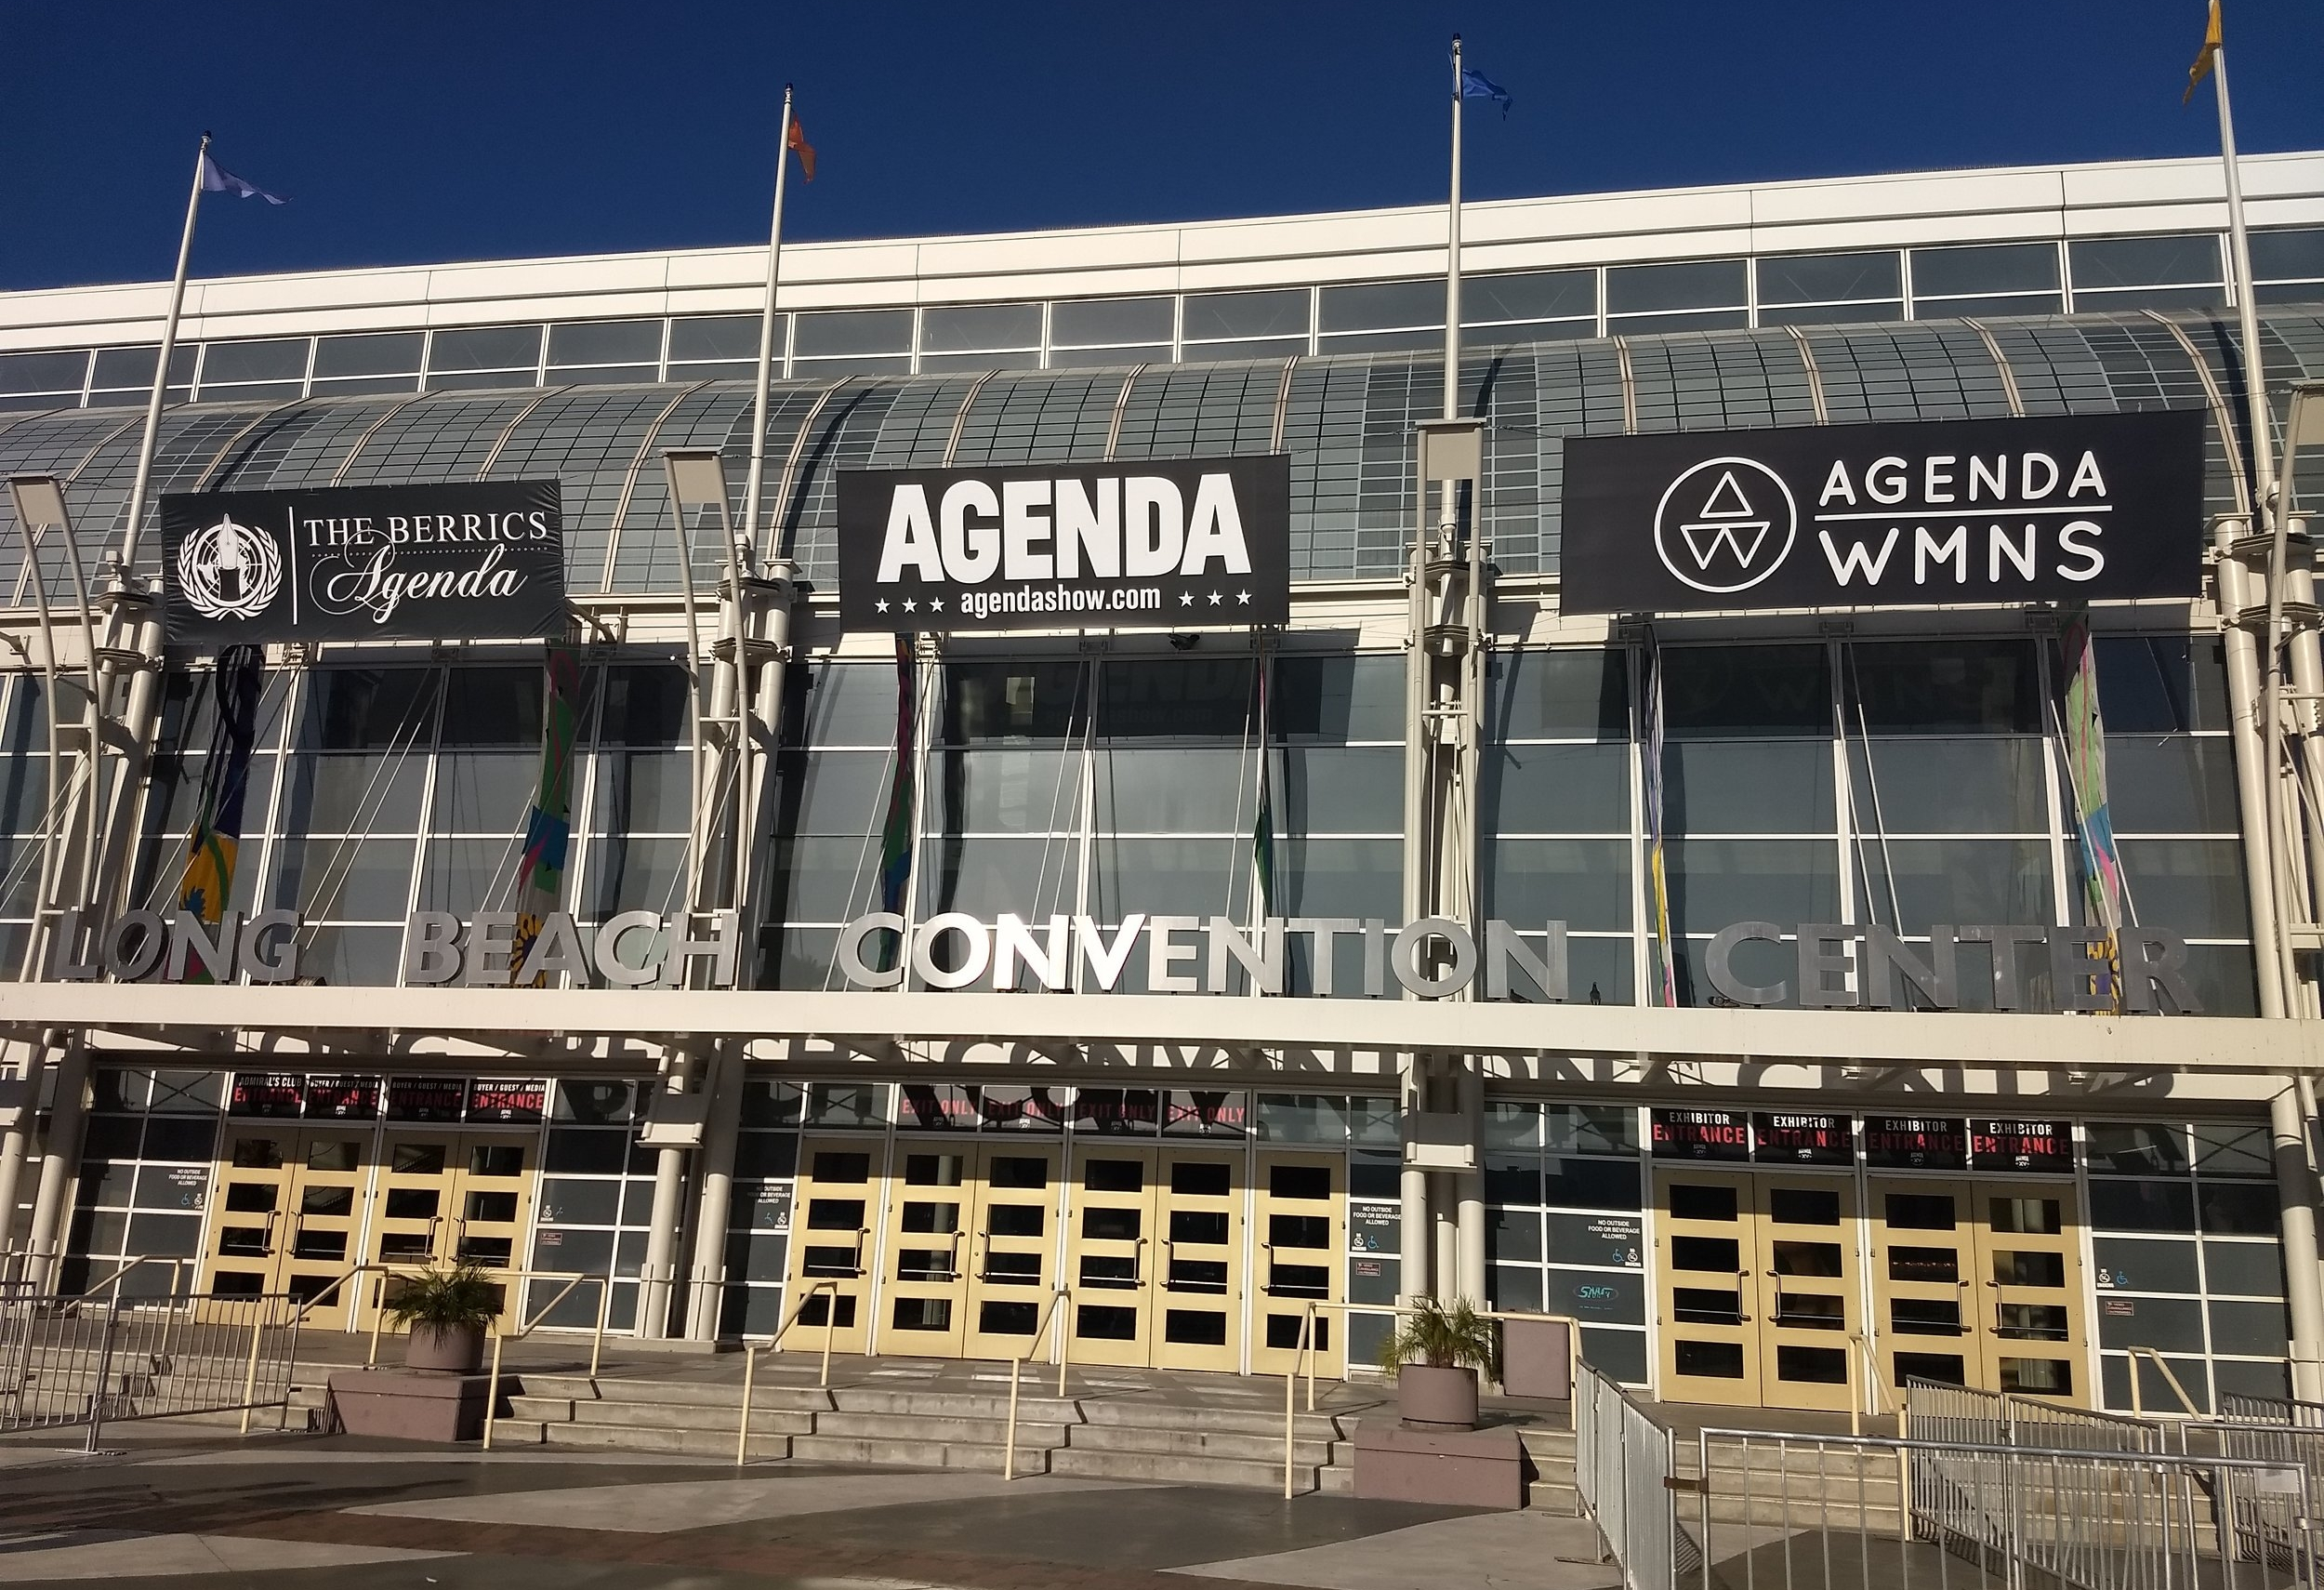 Long Beach Convention Center during golden hour,day before Agenda Show 2018.